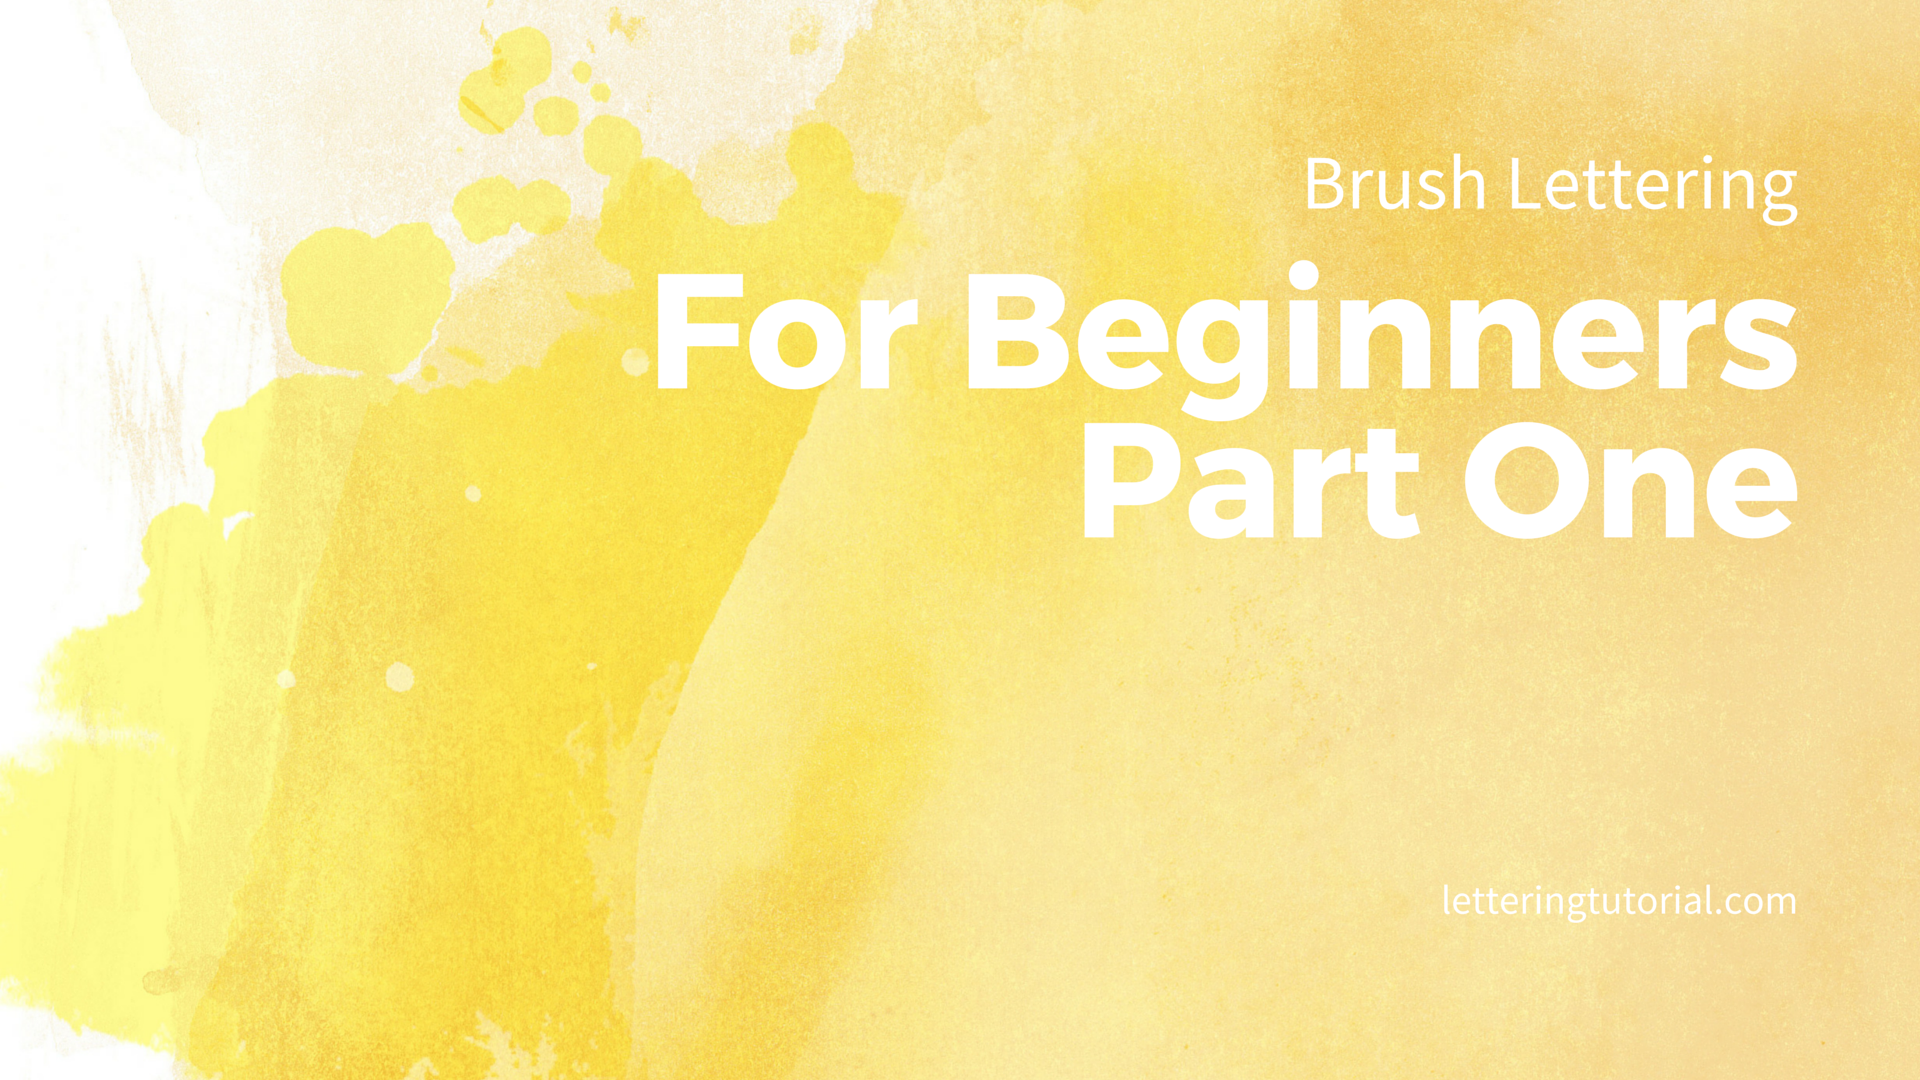 Brush Lettering For Beginners Part One - Lettering Tutorial